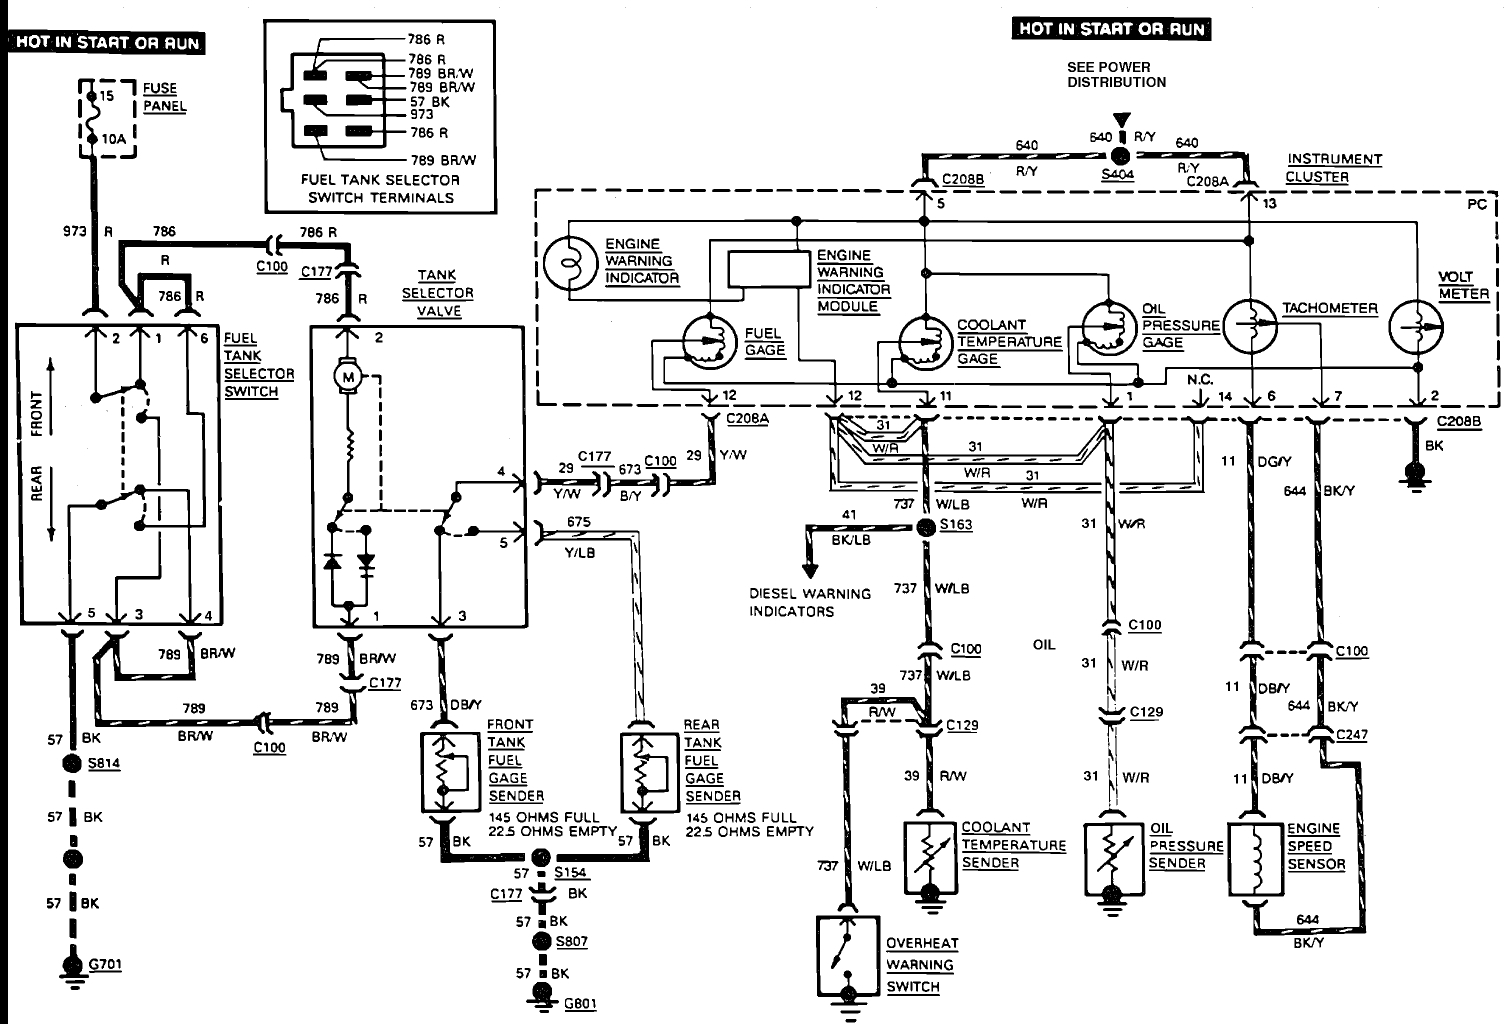 DIAGRAM] Dash Wiring Diagram 2000 F750 FULL Version HD Quality 2000 F750 -  DIAGRAMINGCO.FOTOVOLTAICOINEVOLUZIONE.IT | Ford F 750 Wiring Diagram |  | Diagram Database